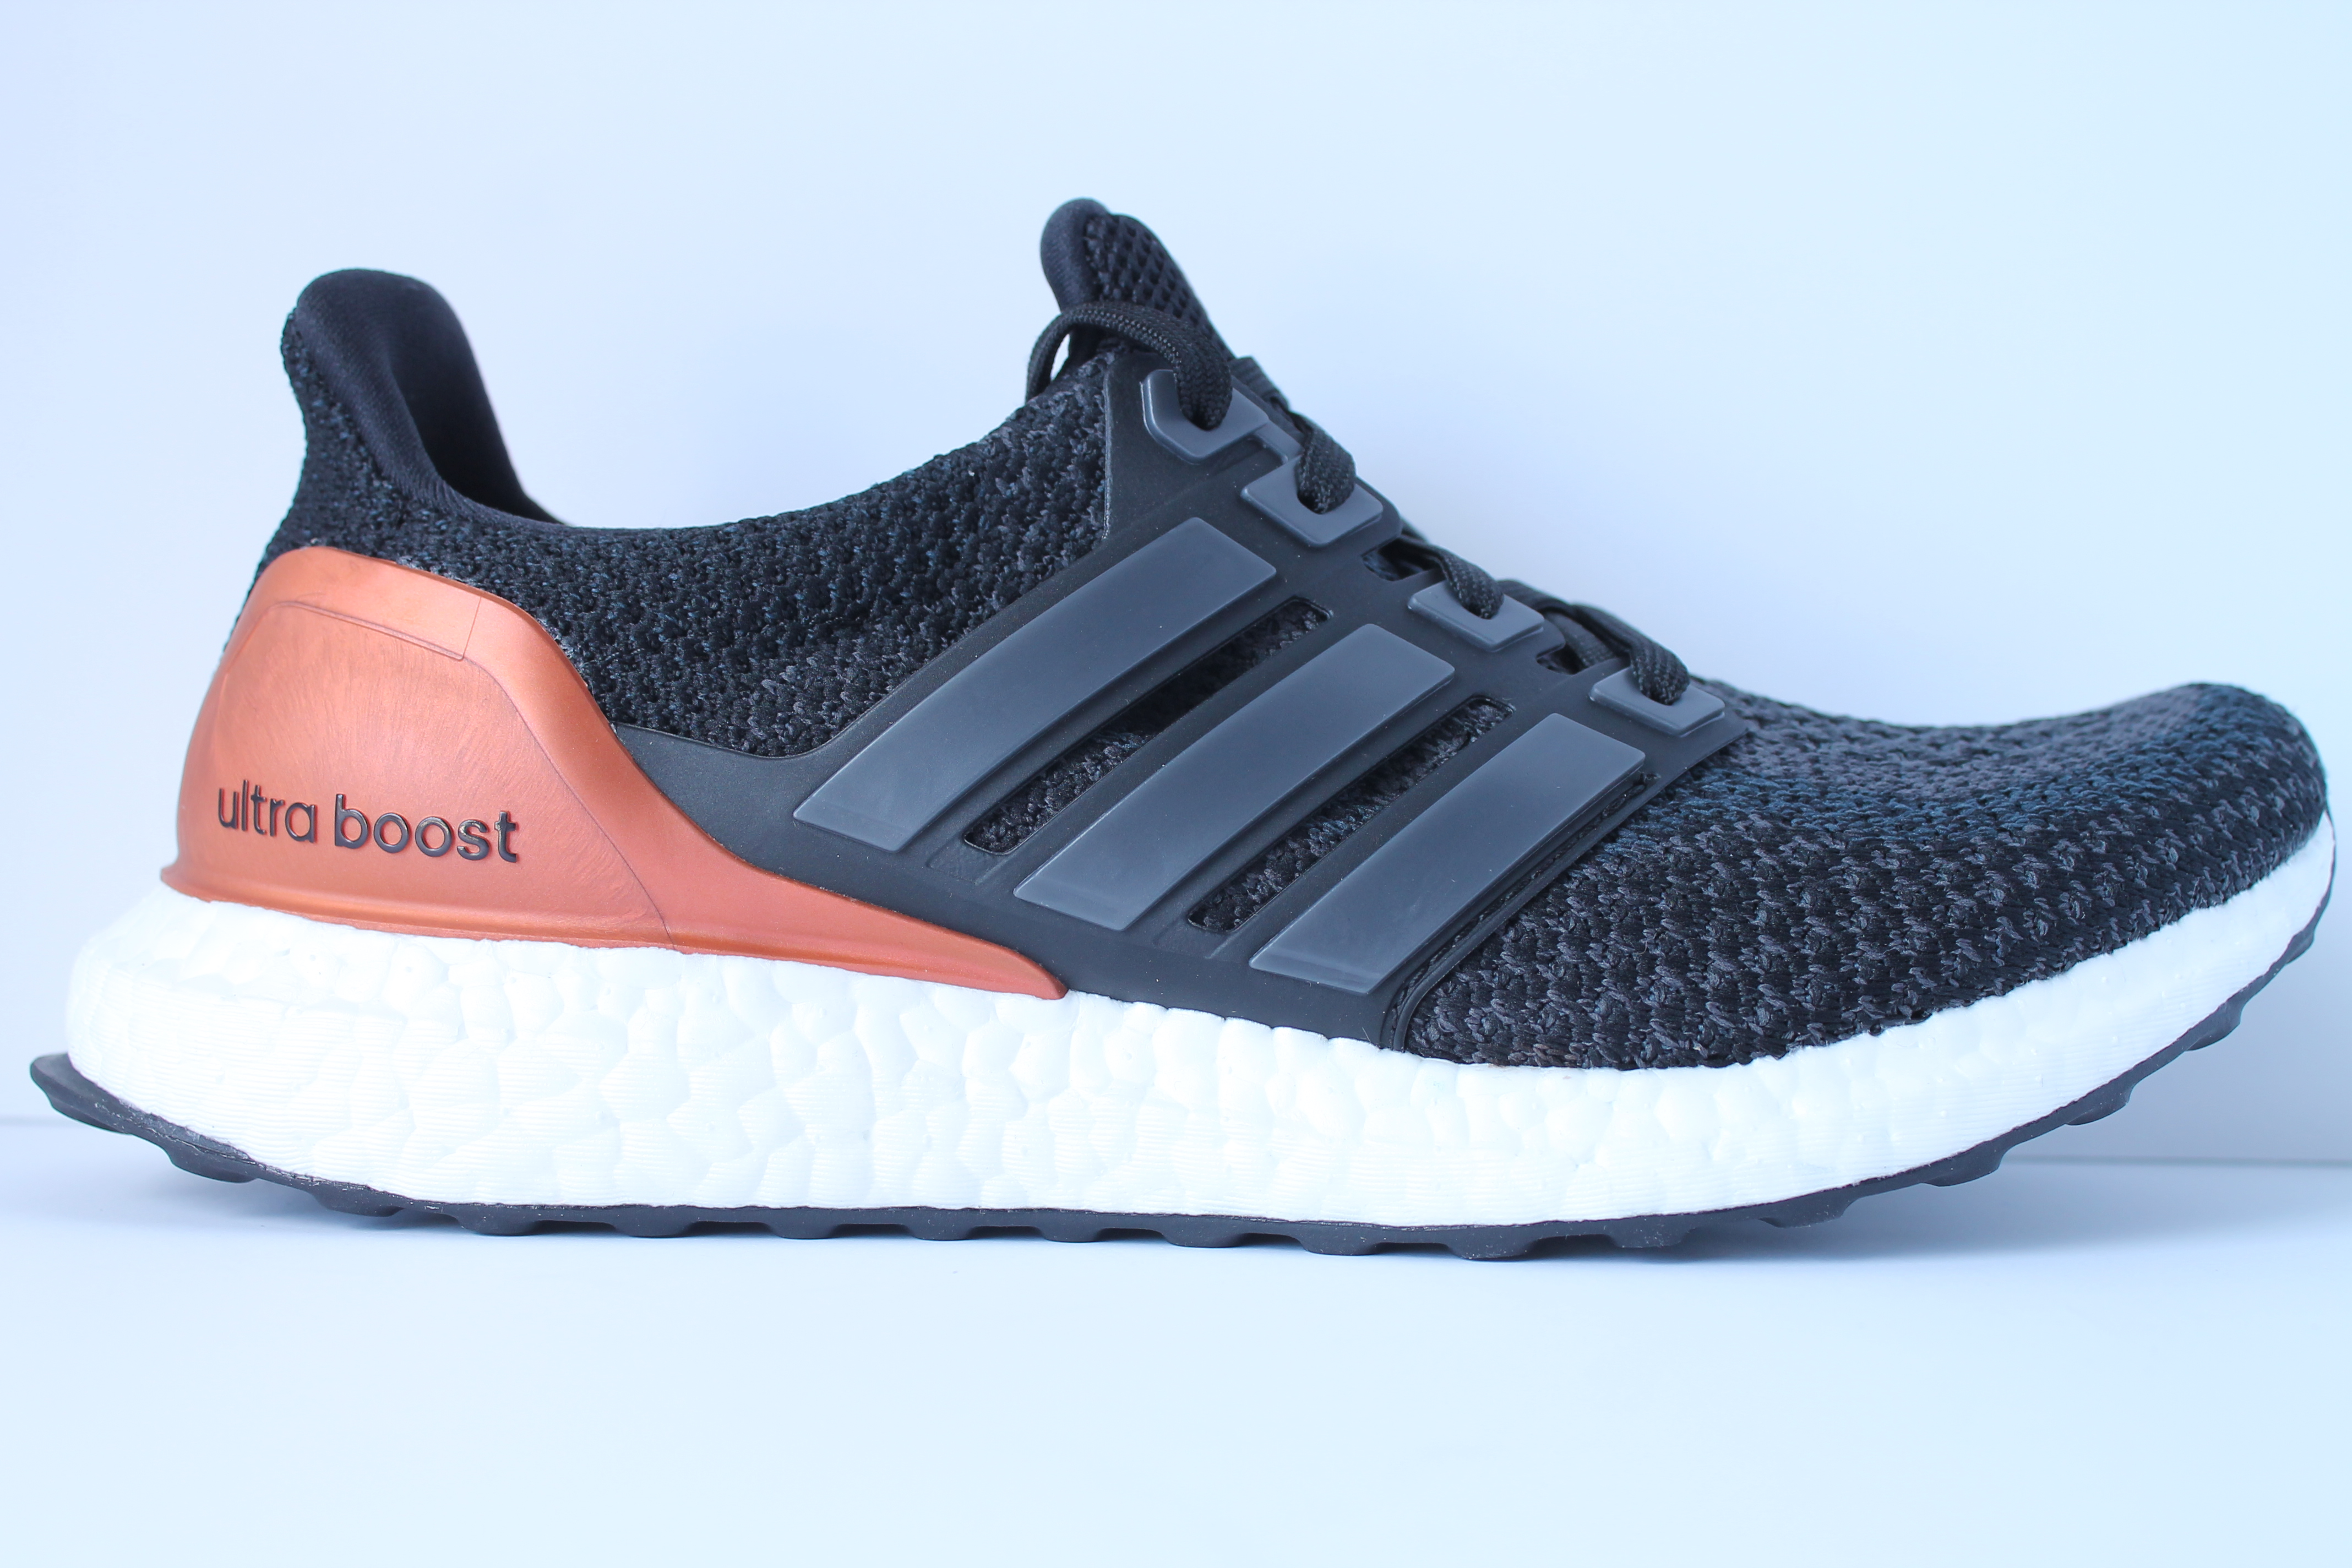 726213f685858 Adidas Ultra Boost LTD - Bronze Olympic Medal Pack